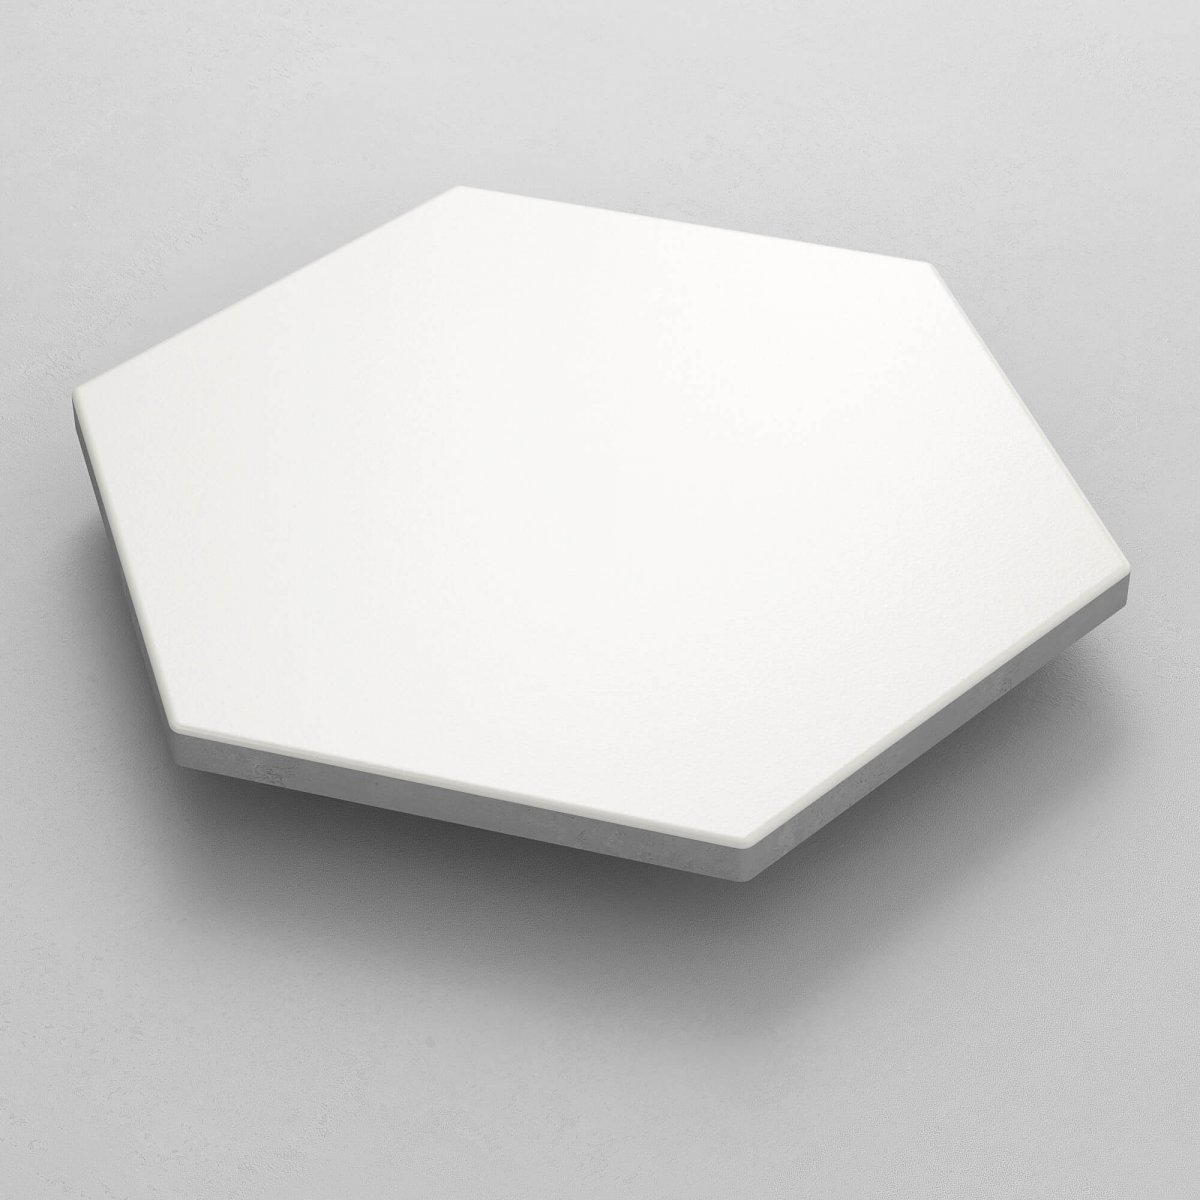 Geotiles Solid White 258x290mm_Stiles_Product_Image2